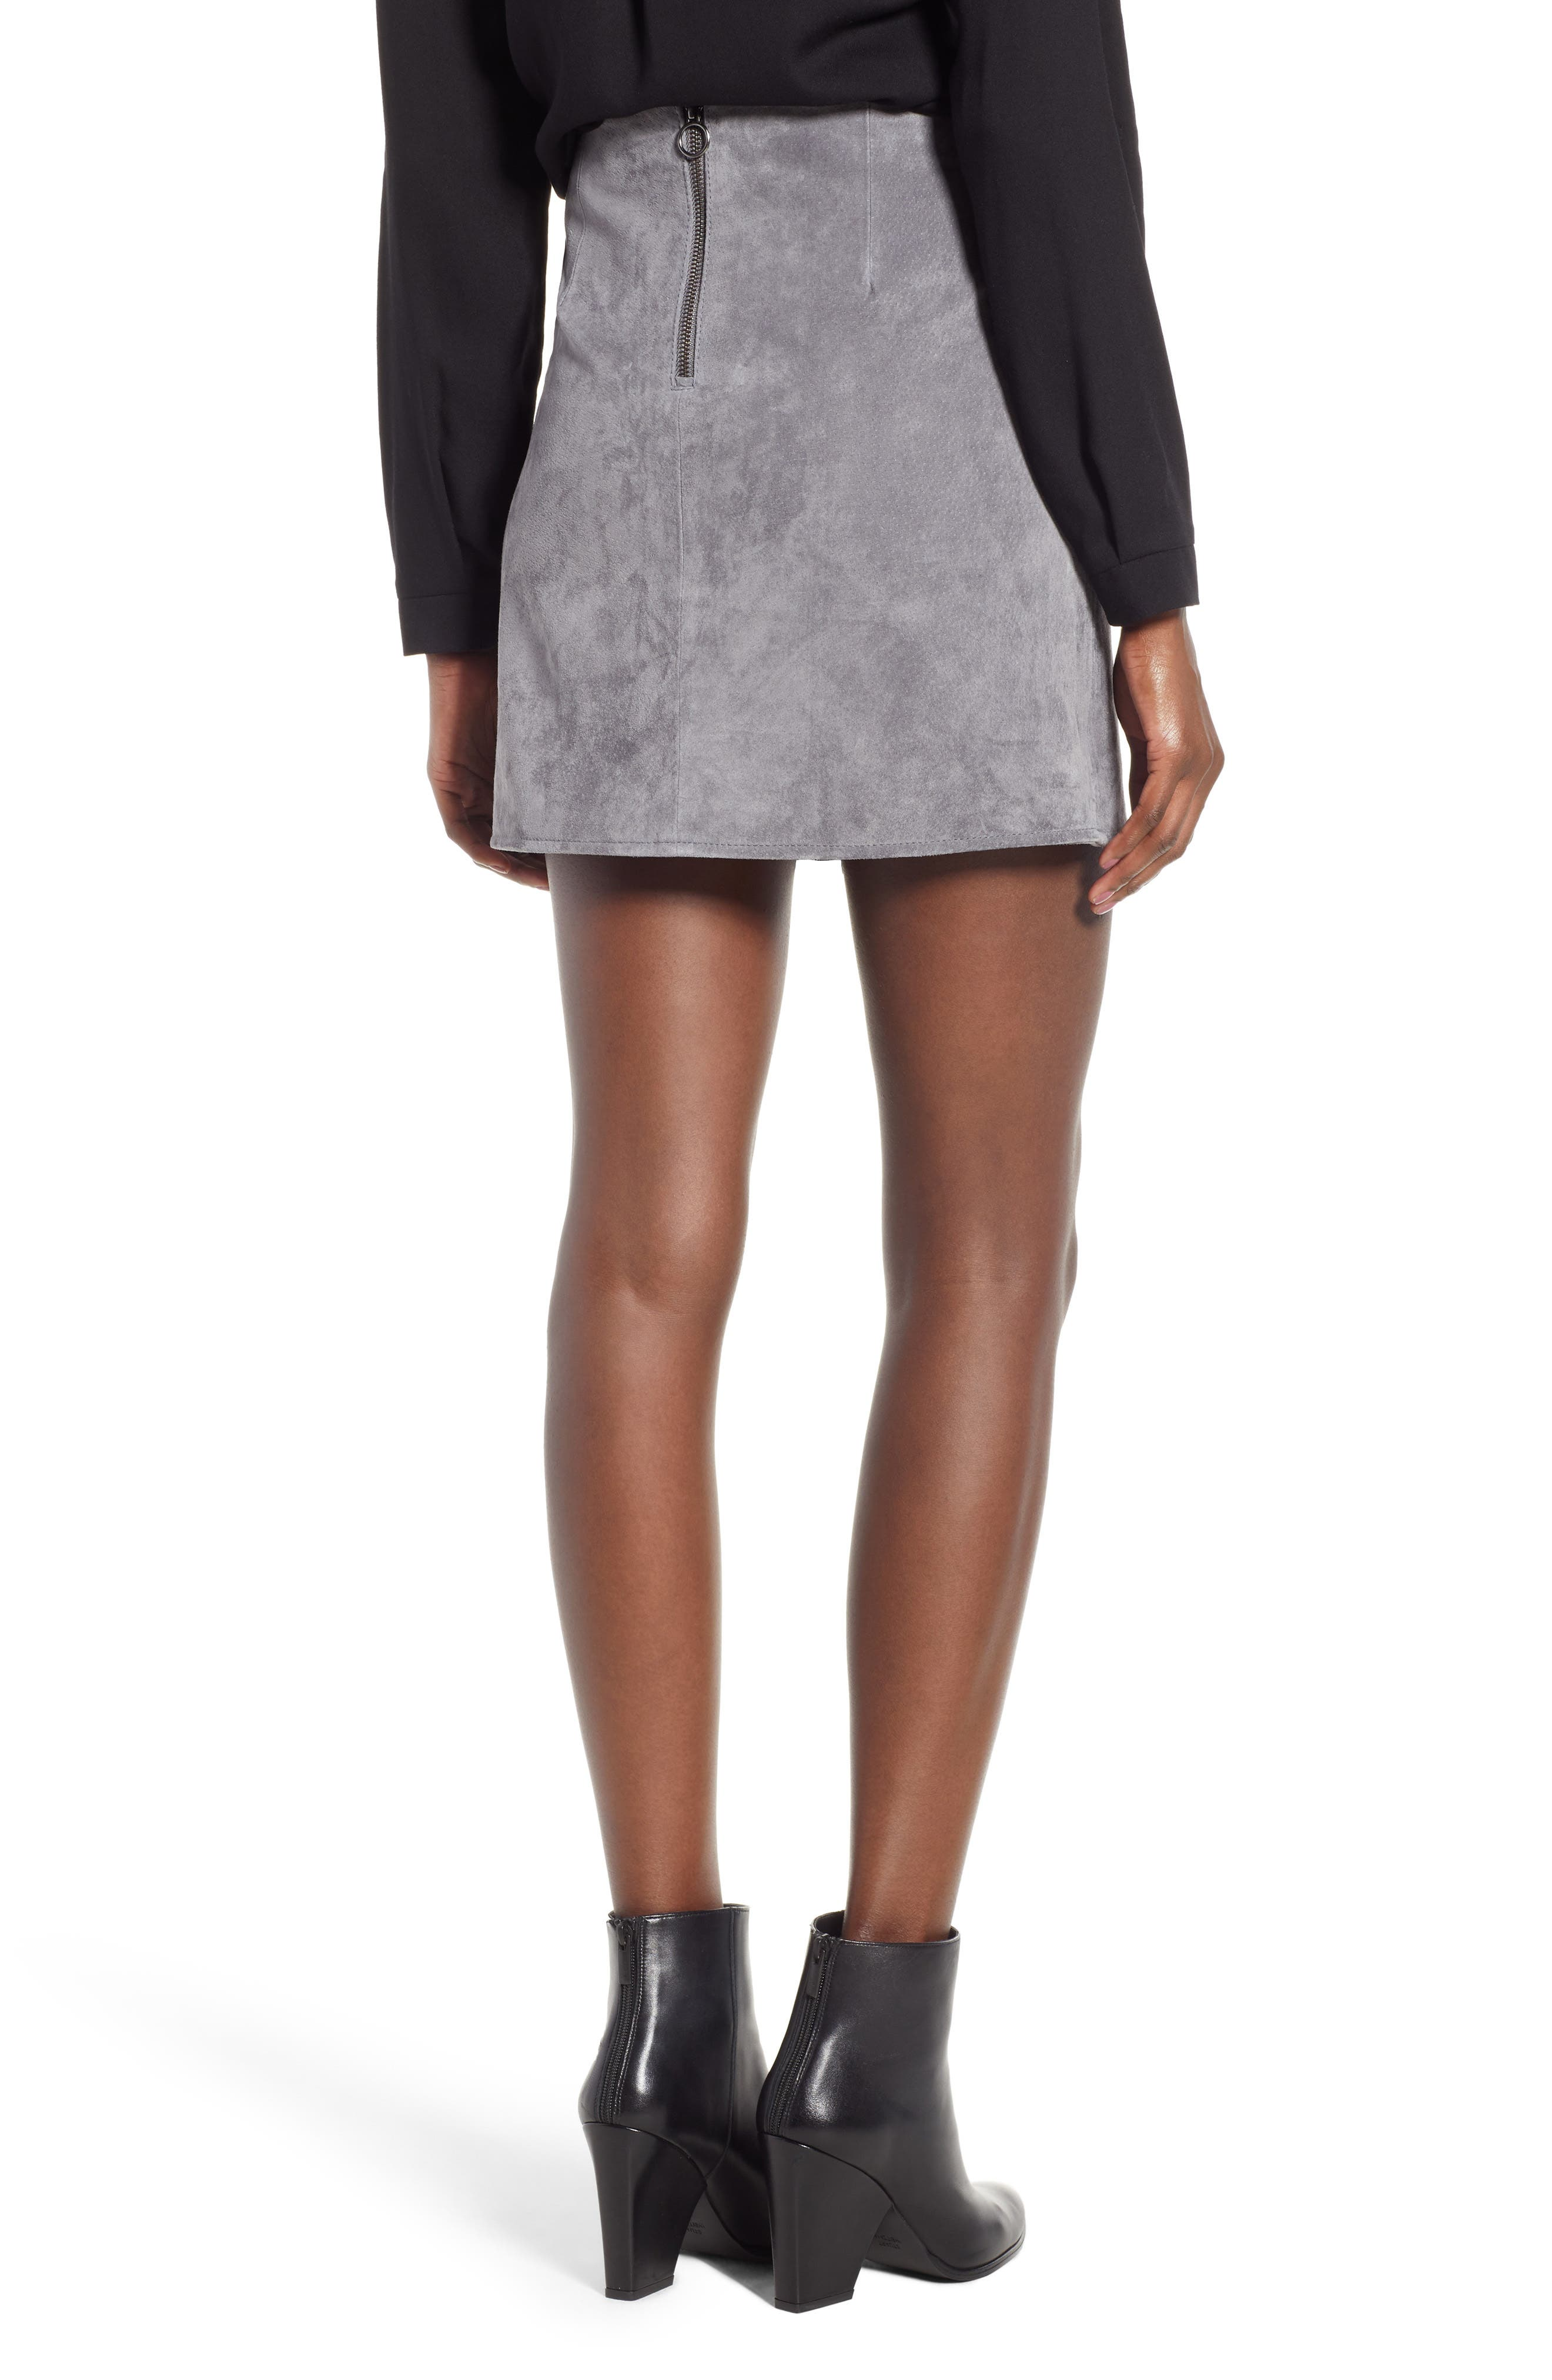 BLANKNYC, A-Line Suede Skirt, Alternate thumbnail 2, color, 020